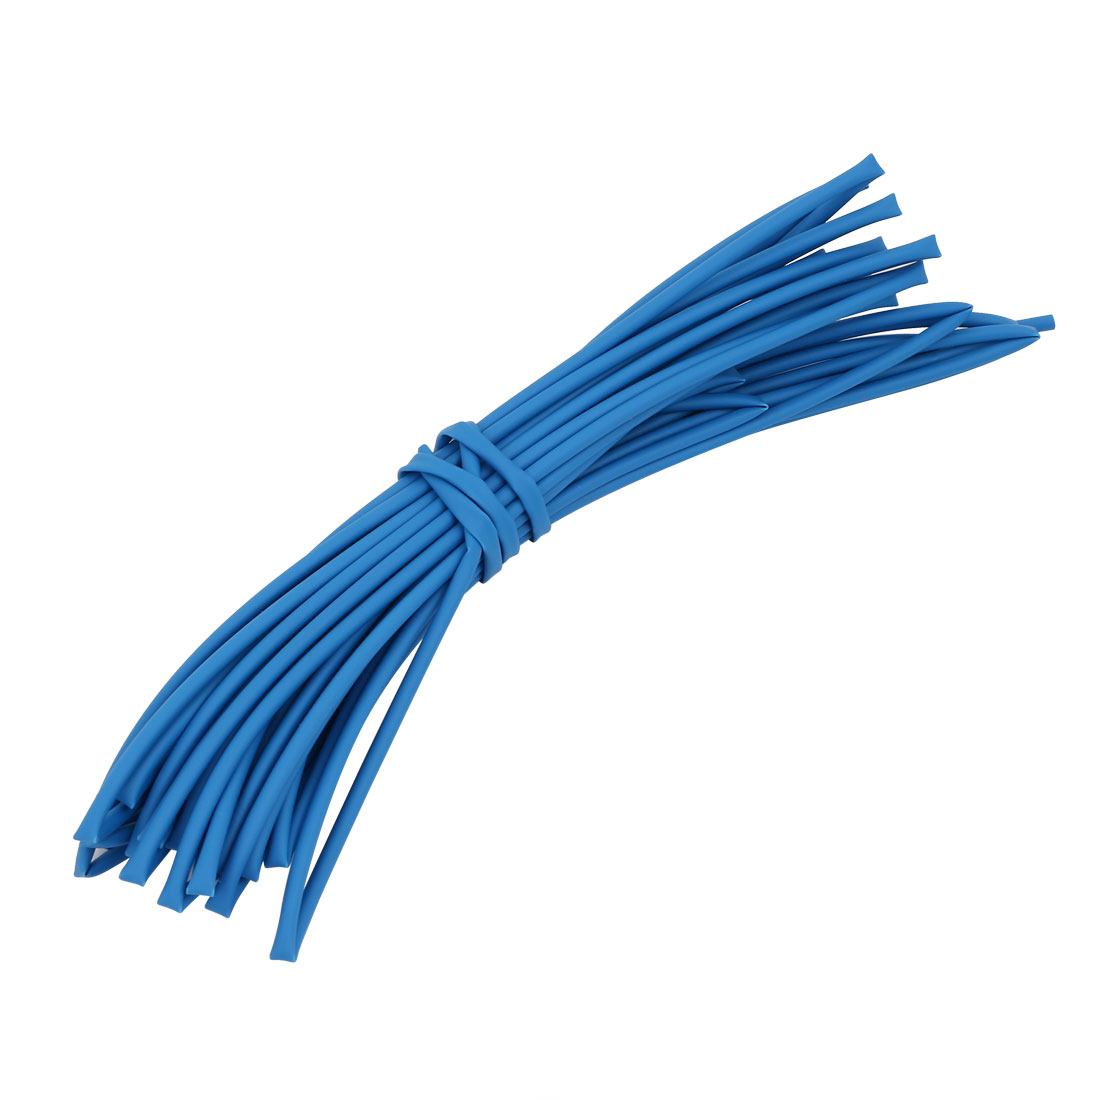 6M Length 1.5mm Inner Dia Polyolefin Insulated Heat Shrink Tube Wire